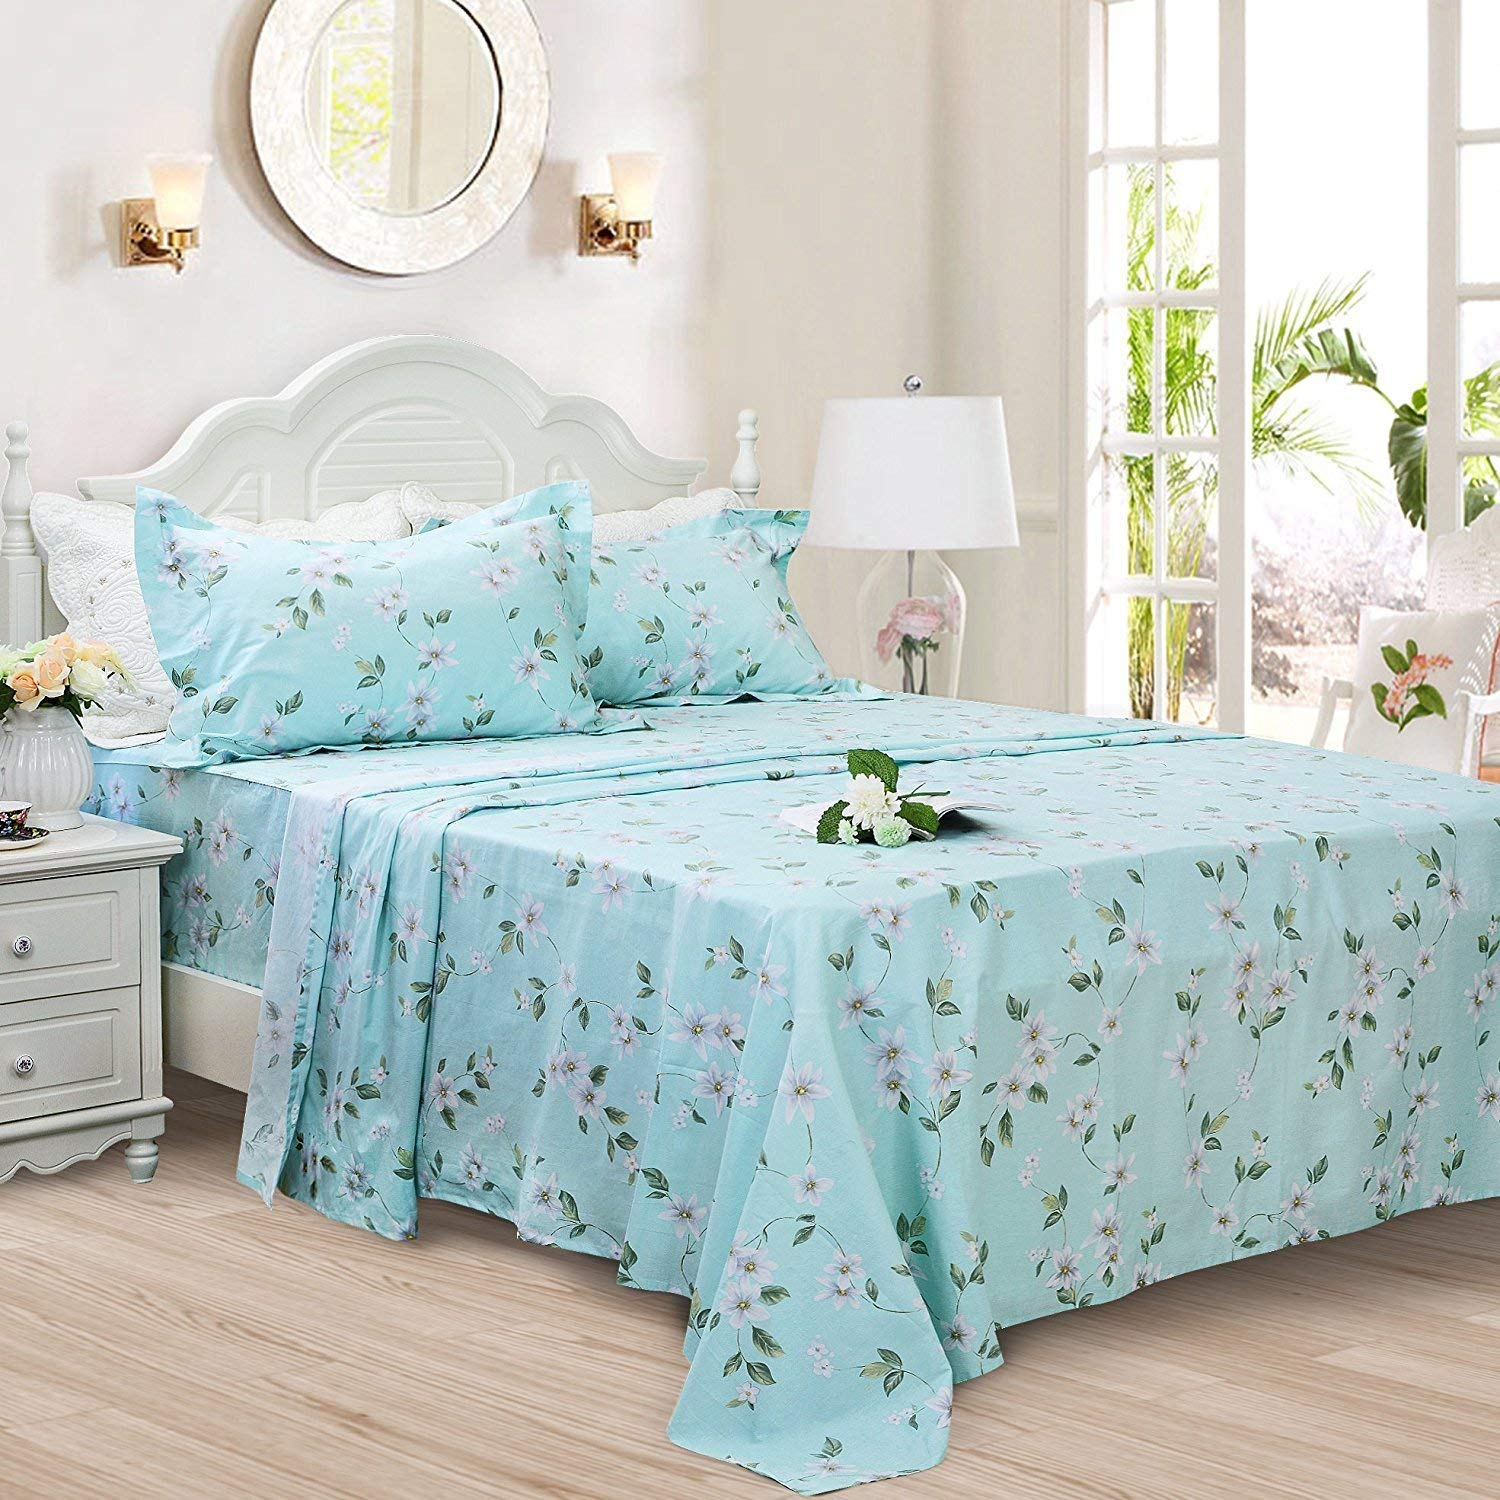 Green White Floral Twin XL FADFAY Cotton Bed Sheet Set bluee Hydrangea Floral Bed Sheets 4Piece King Size